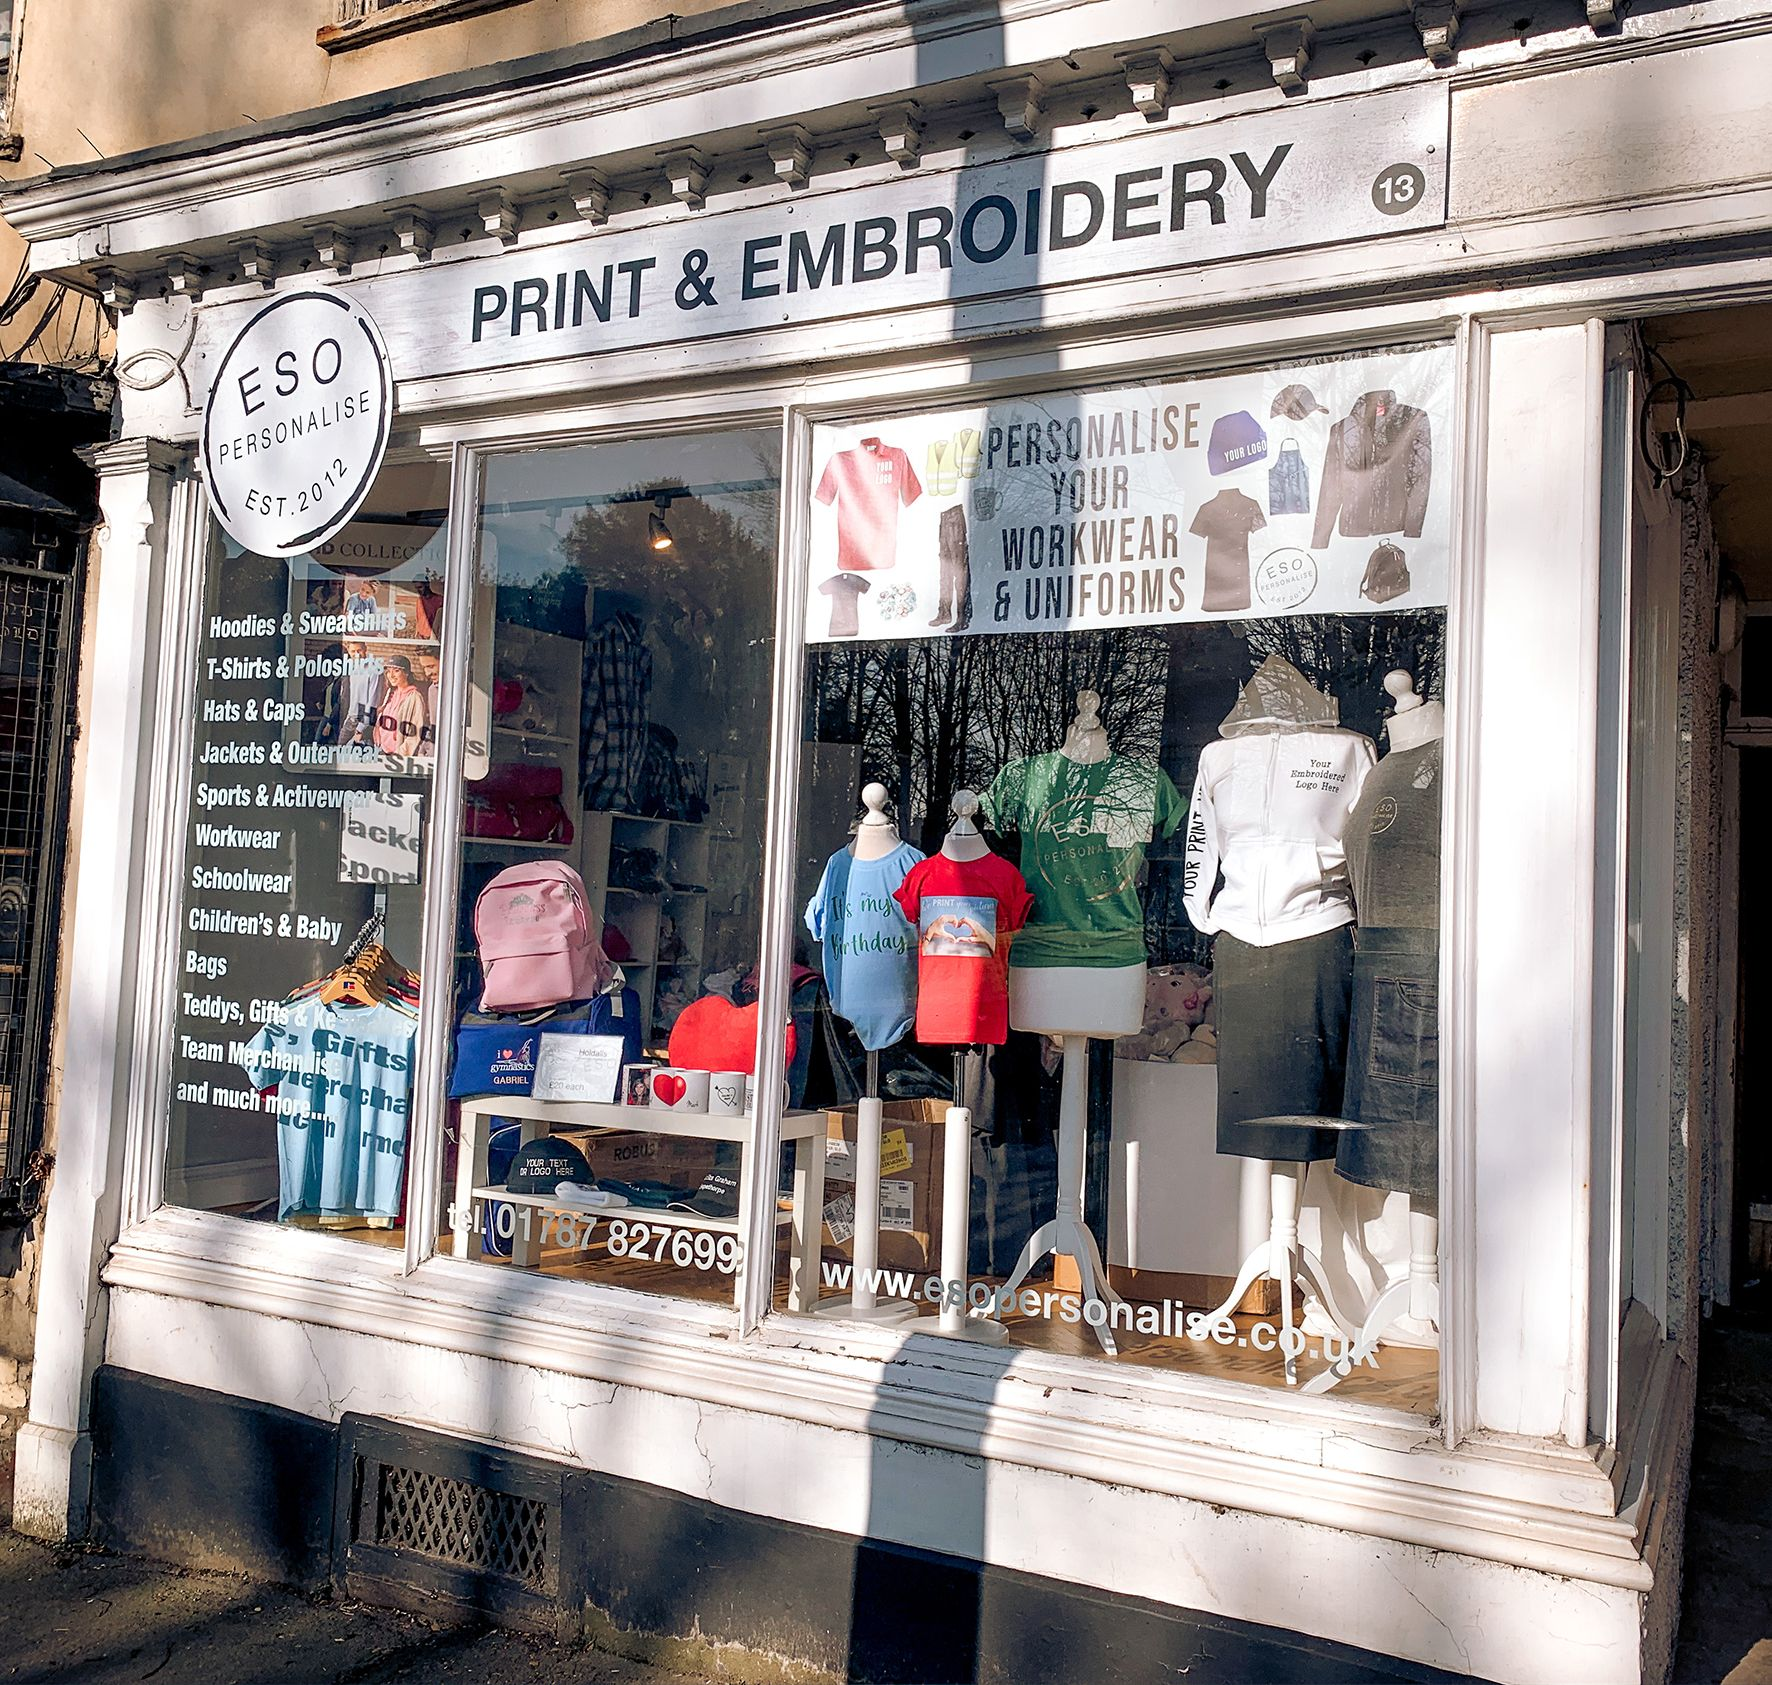 Embroidery shop, print and embroidery shop, embroidery shop window, print & embroidery shop window